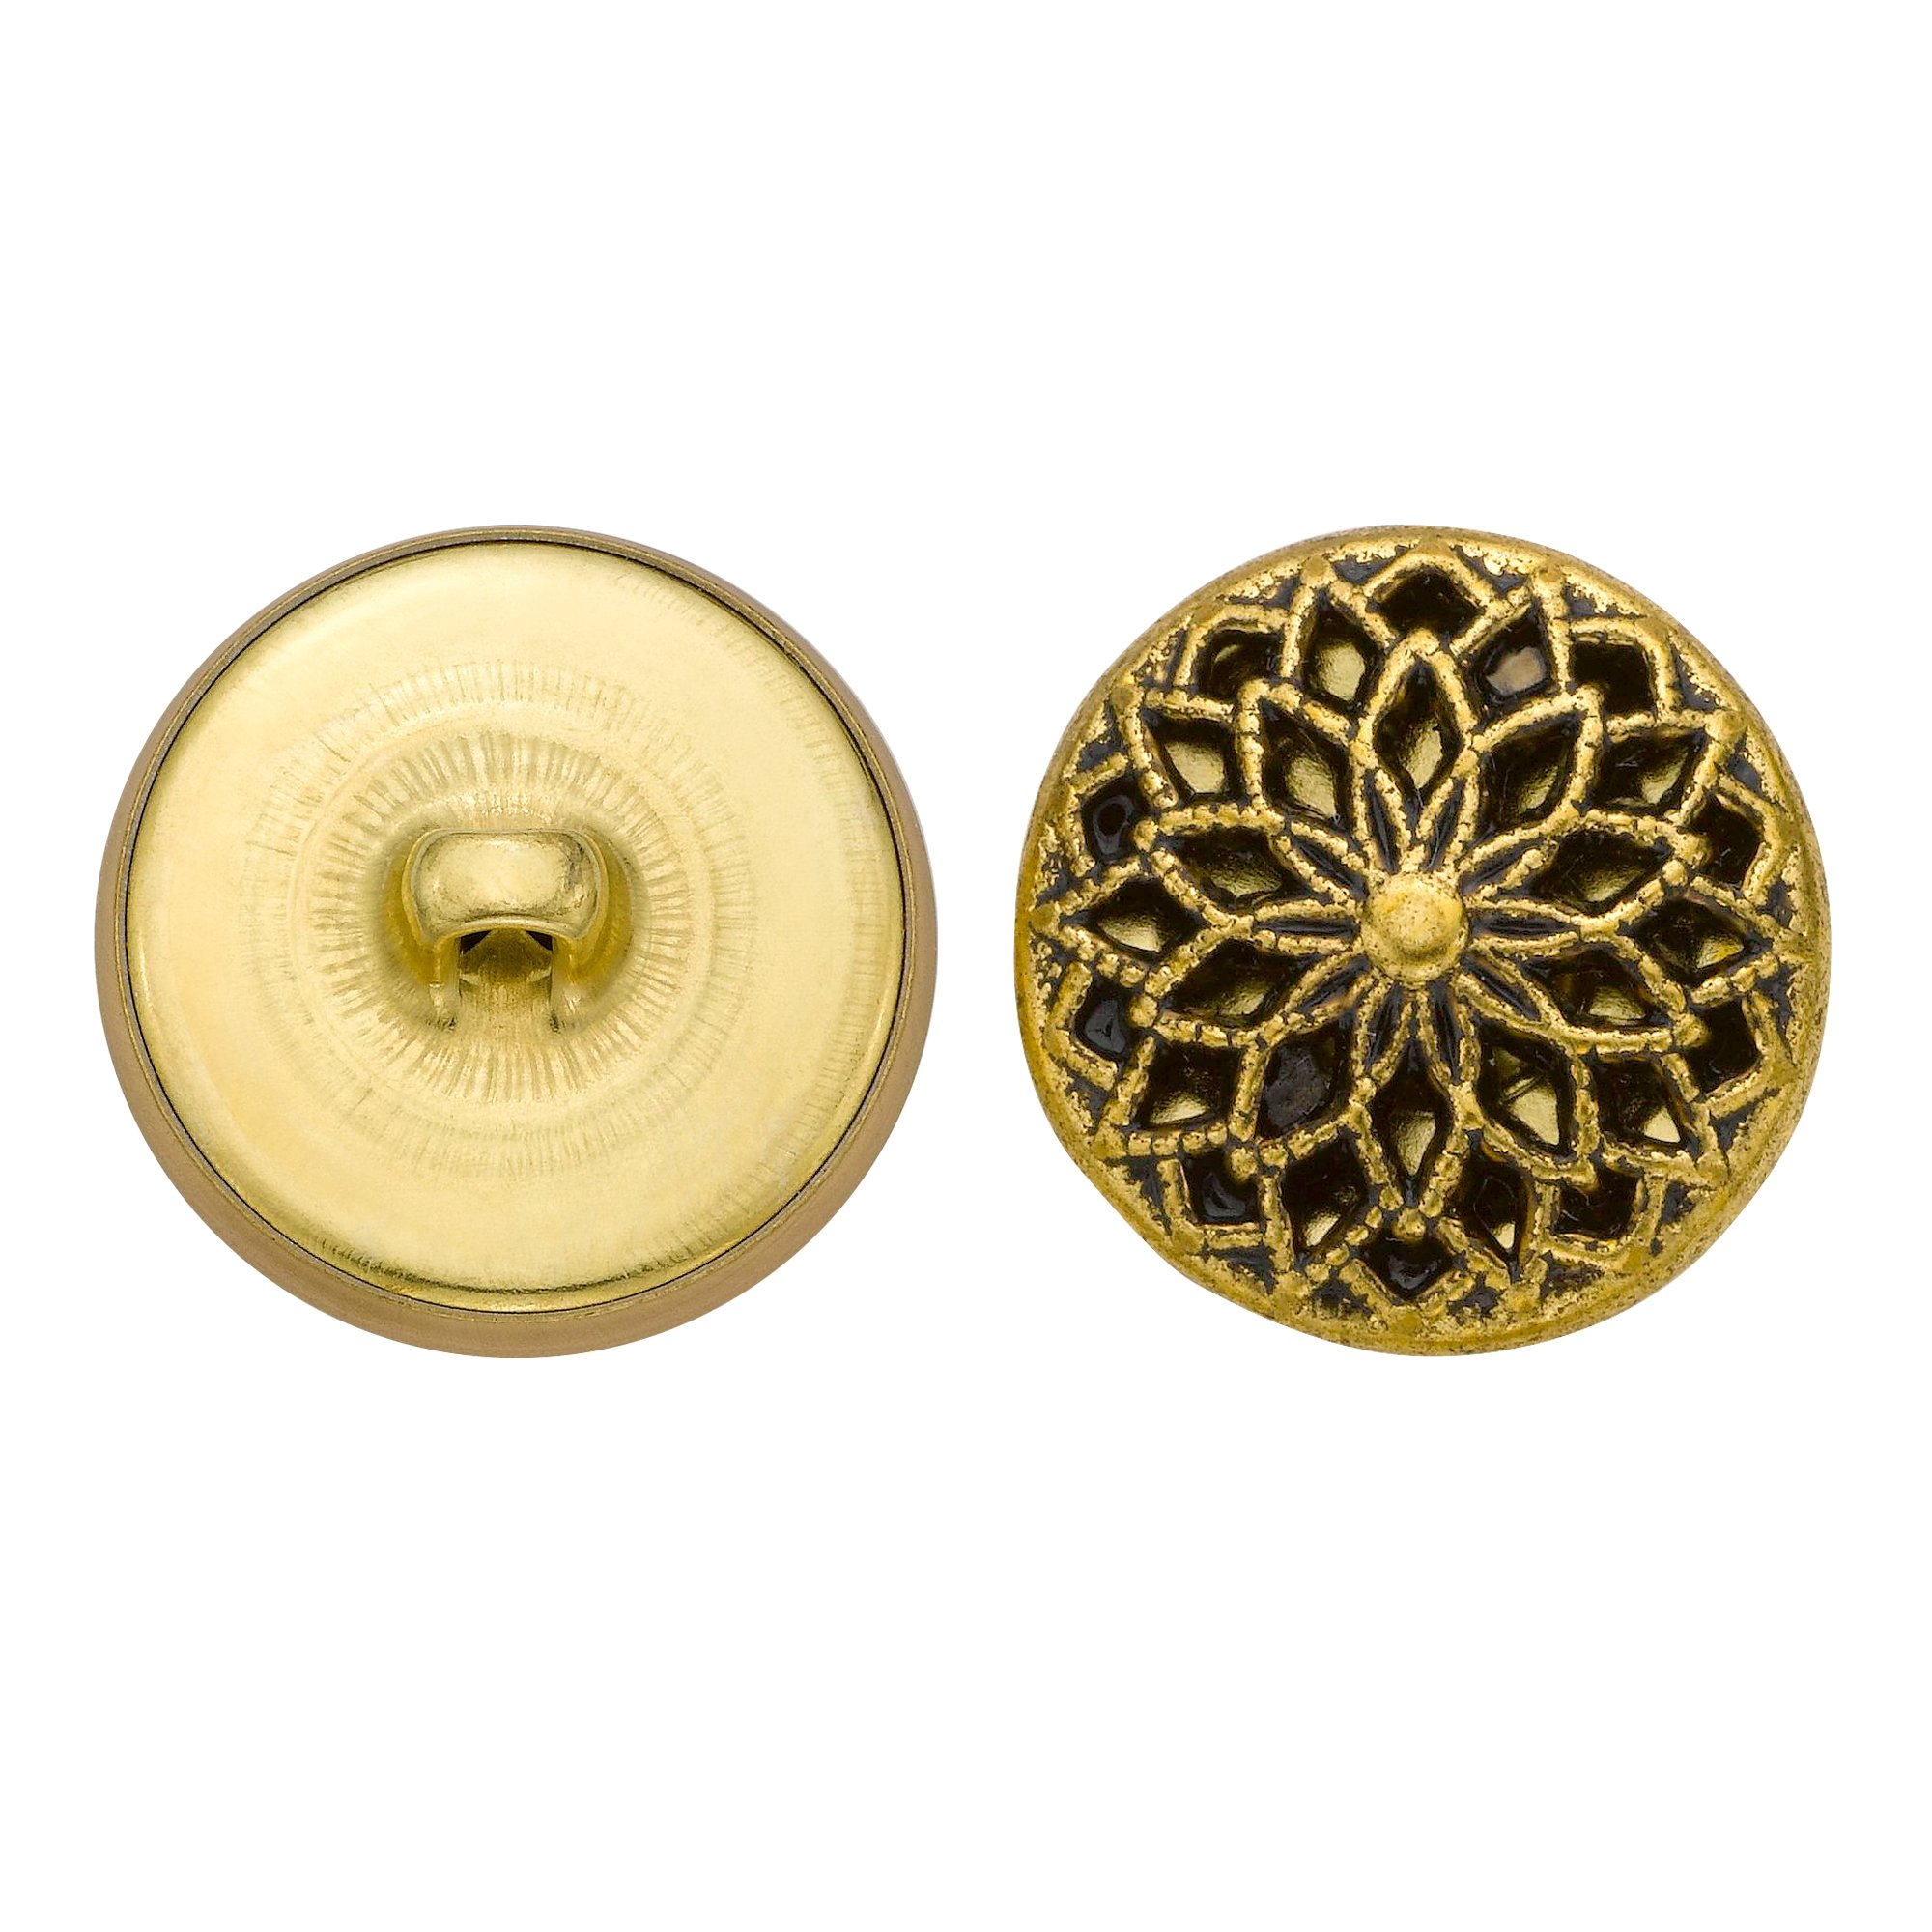 C&C Metal Products 5353 Filigree Metal Button, Size 36 Ligne, Antique Gold, 36-Pack